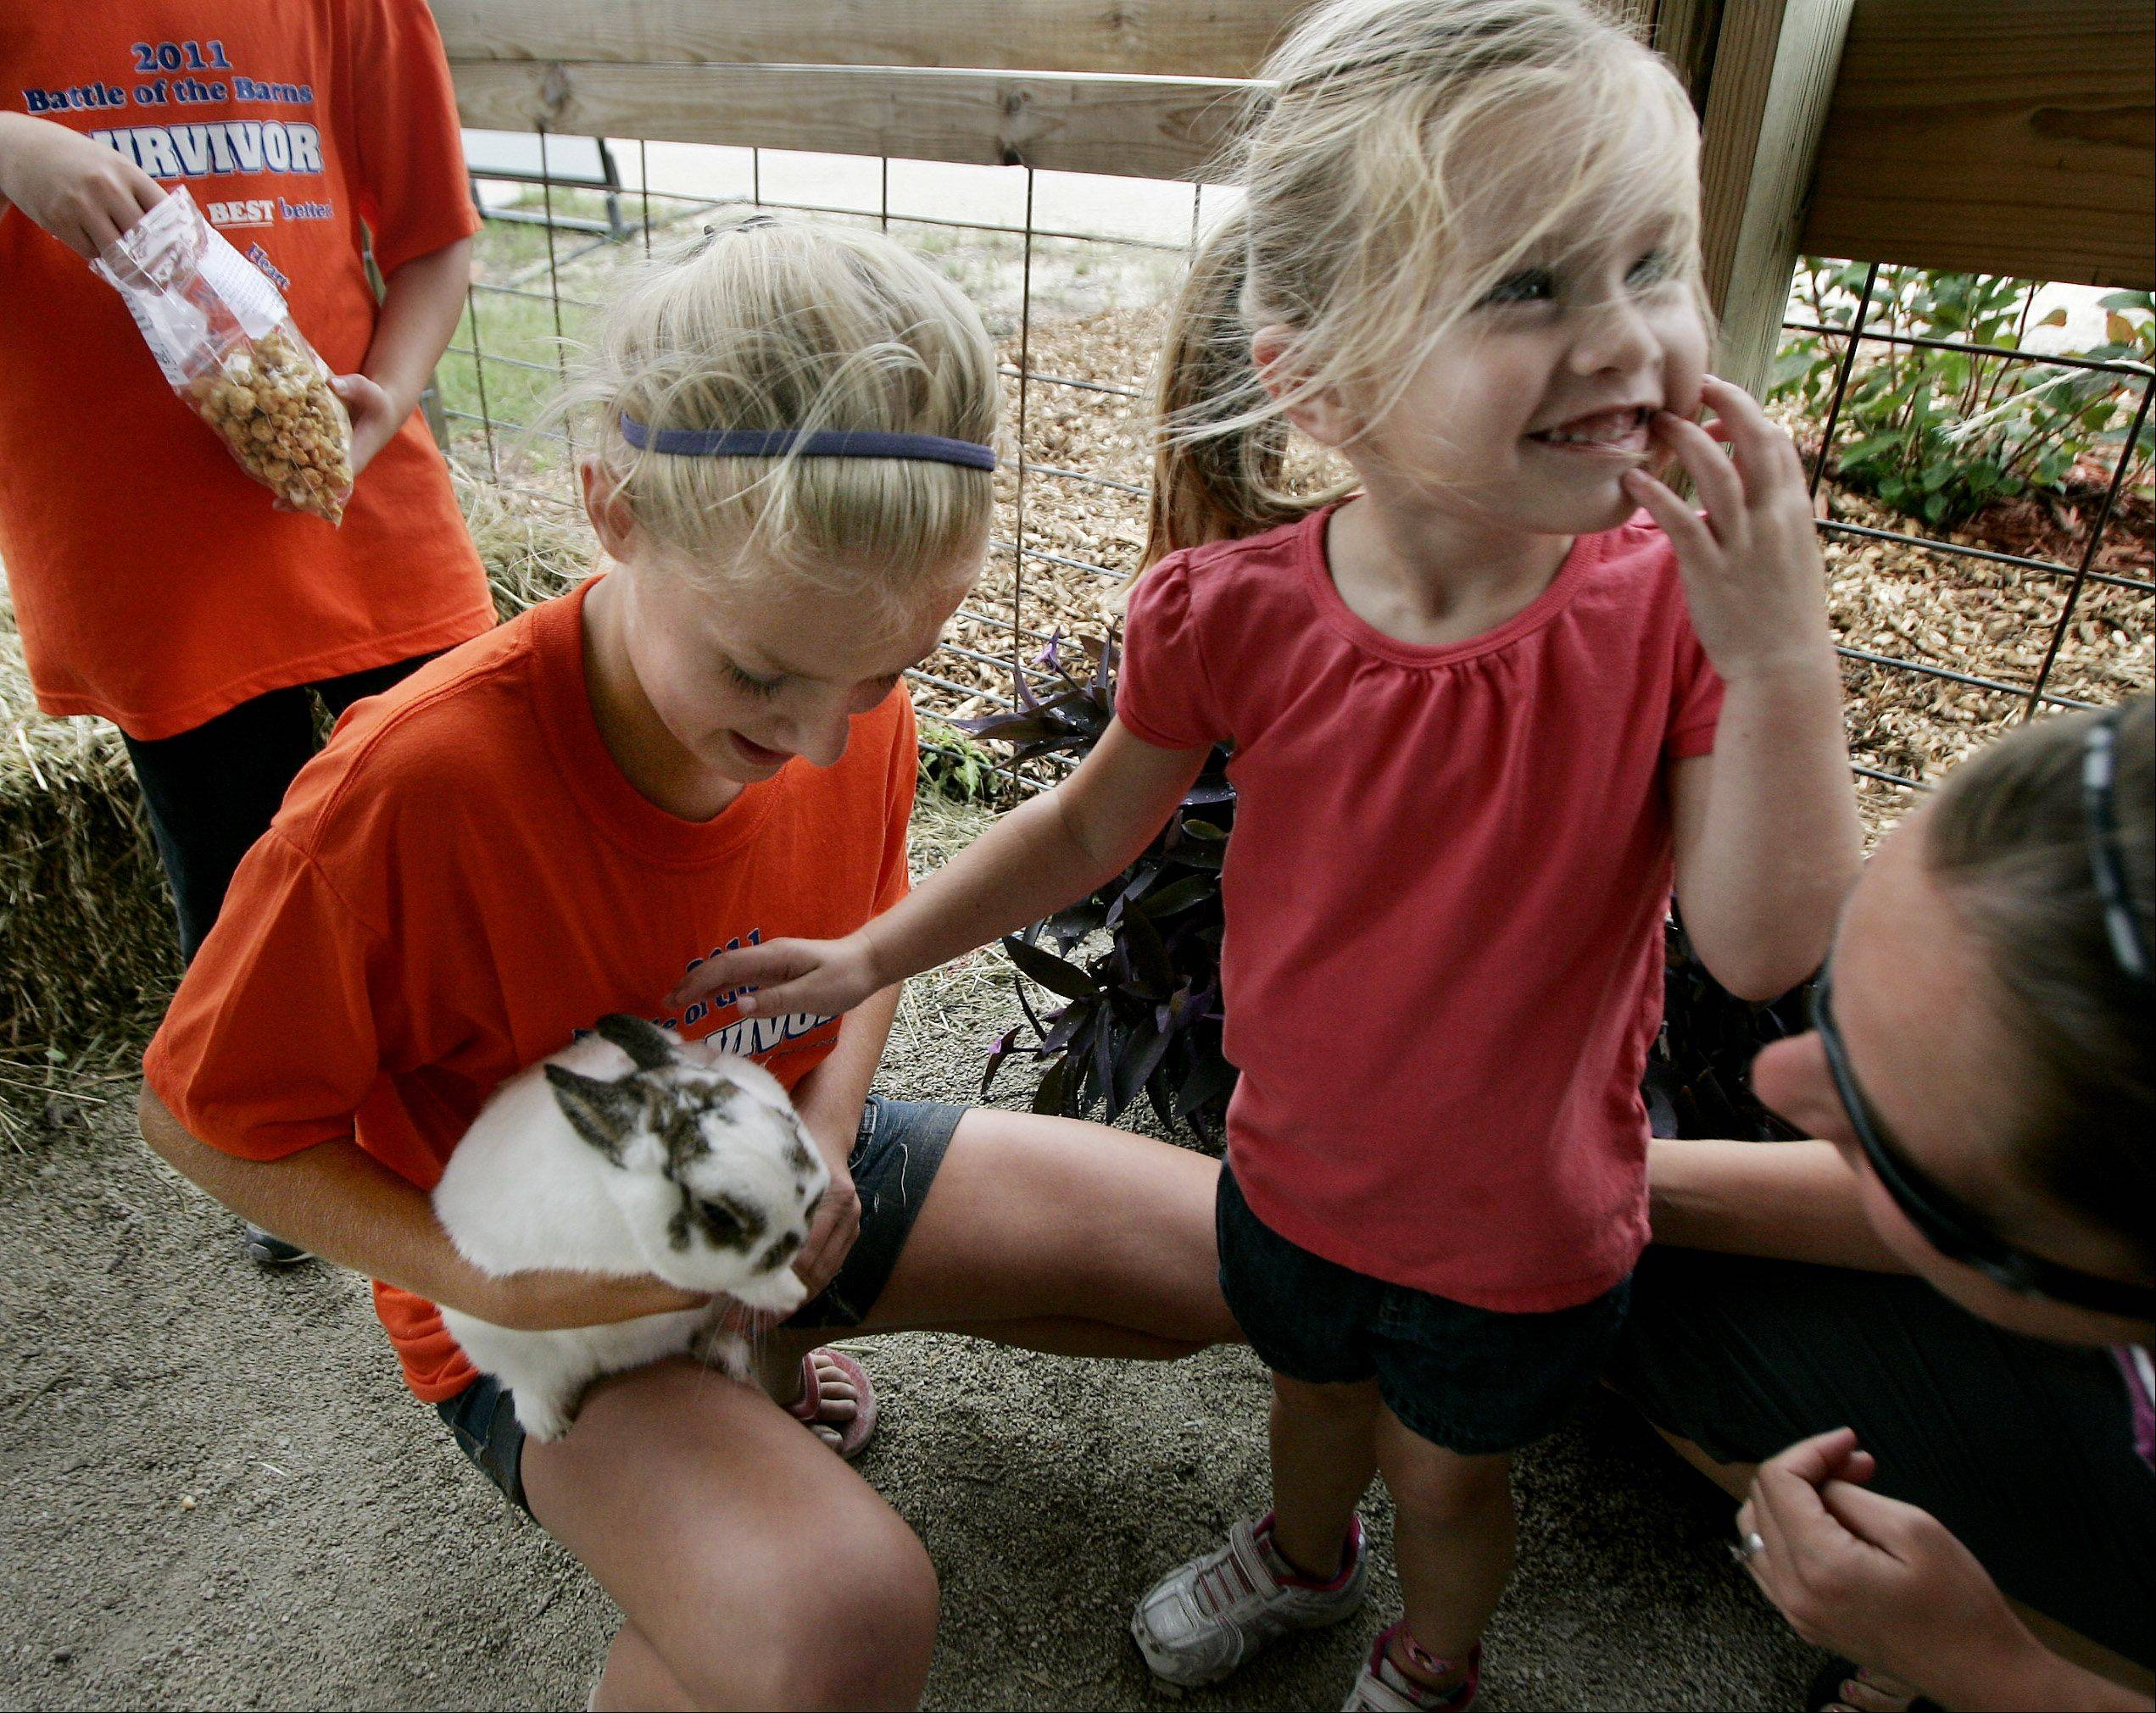 Katie Thern, 13, of Lake Zurich holds Chives, a Netherland dwarf rabbit, as Addison Michelau, 3, of Round Lake reaches out to pet it with her mother, Jamie, during the second day of the 83rd Annual Lake County Fair Wednesday at the fairgrounds in Grayslake.